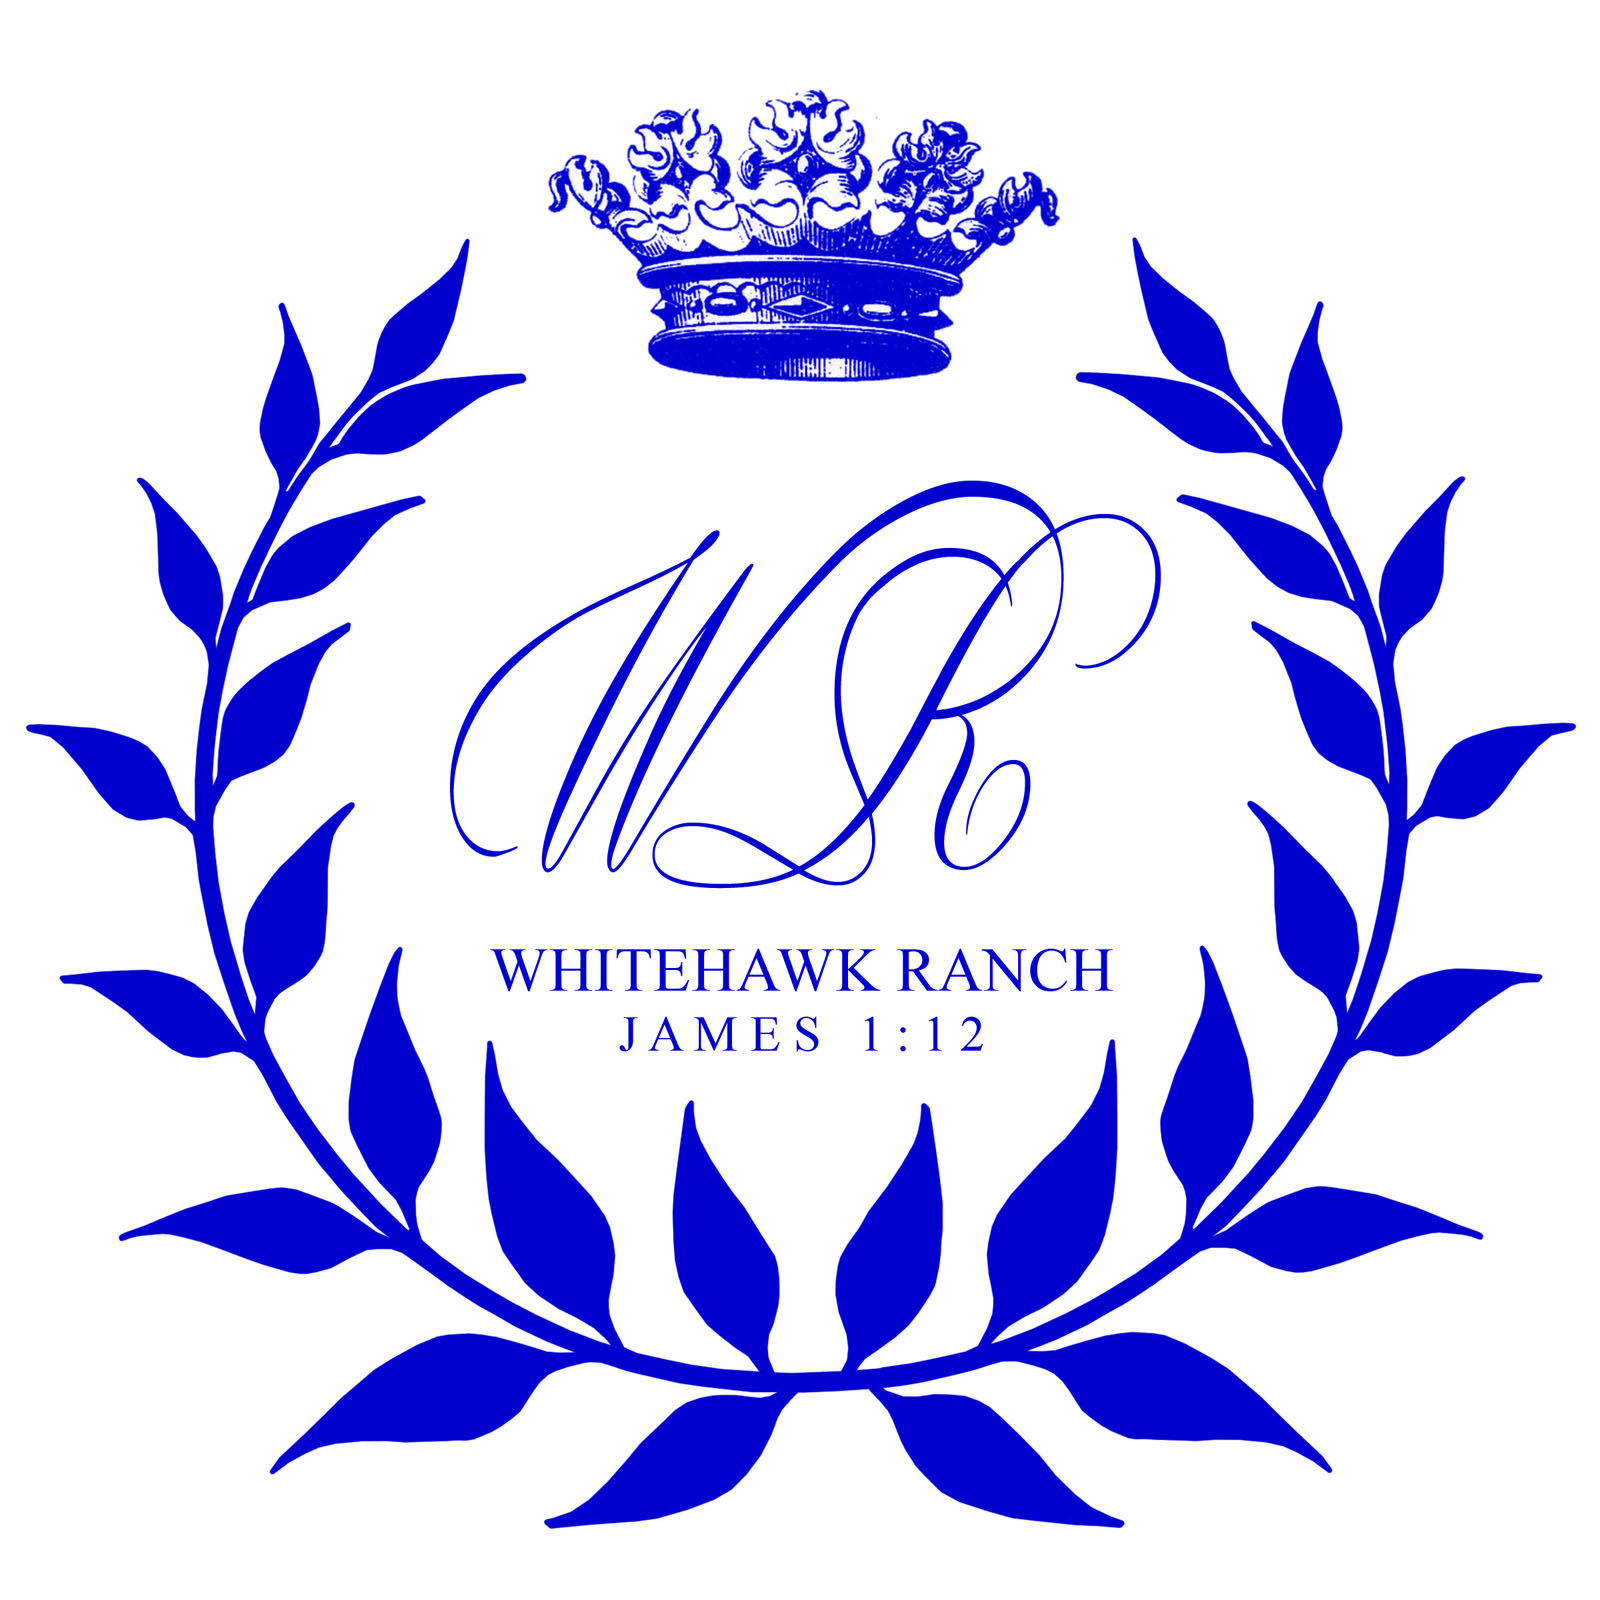 Whitehawk Ranch